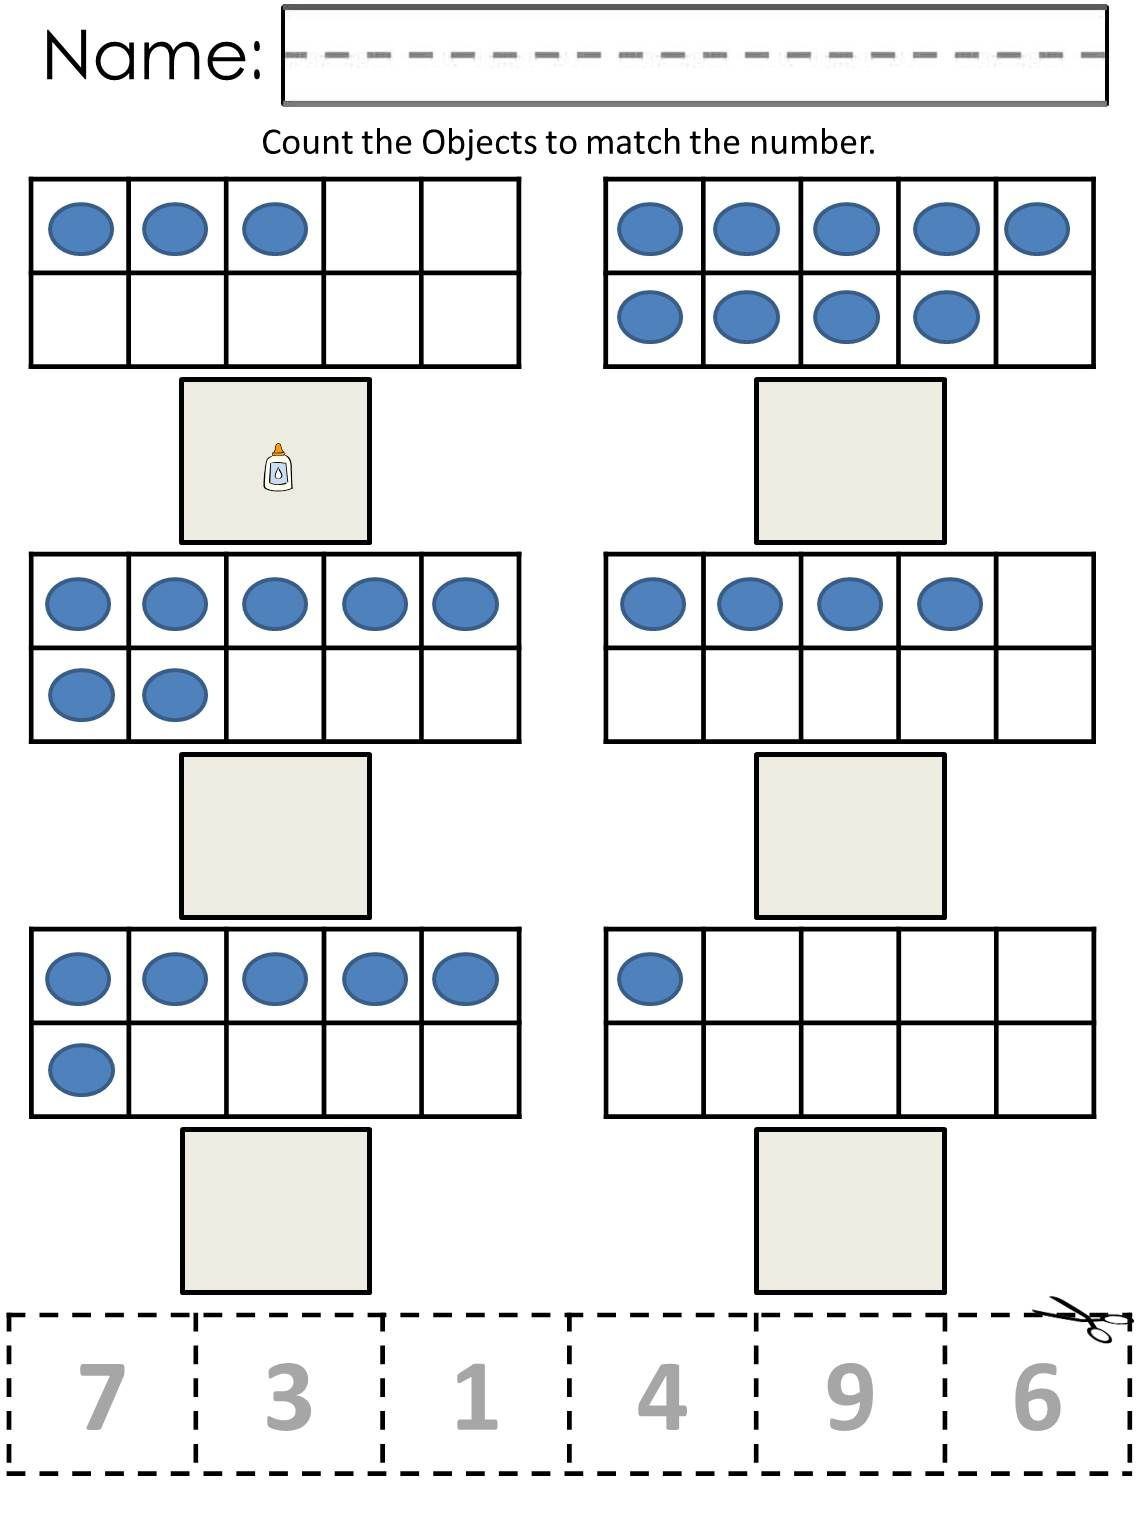 hight resolution of Ten Frame Counting Worksheets Now Available at www.AutismComplete.com   Math  worksheets